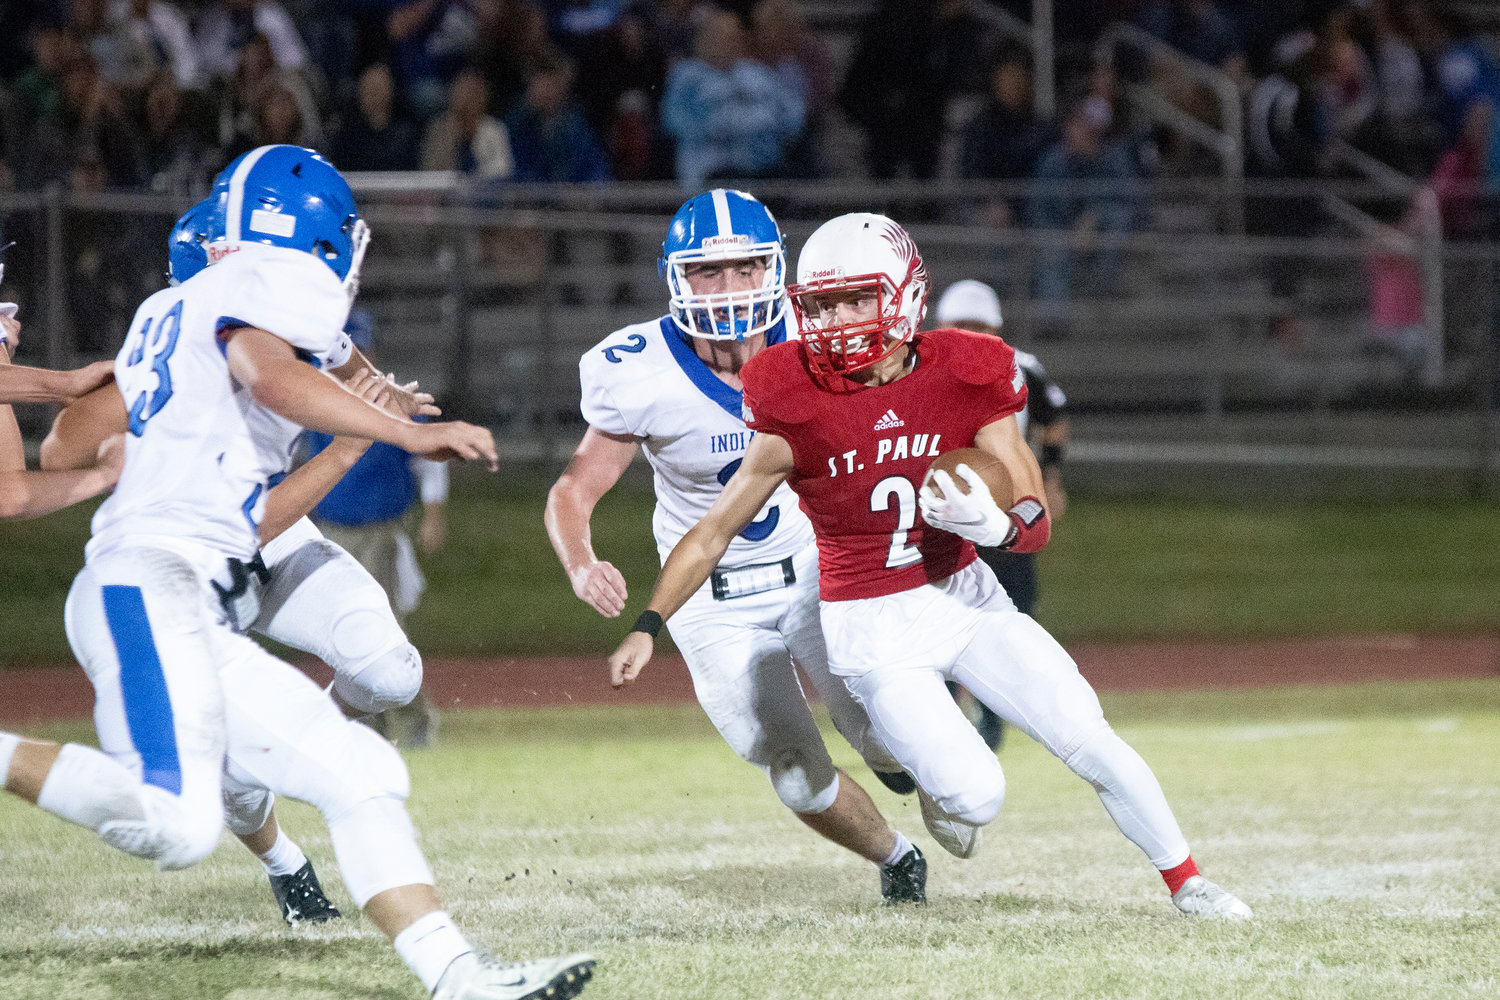 The last time the St. Paul Cardinals faced Sacred Heart twice in one season was in 2012, when the Indians won the regular season but the Cardinals won in the playoffs. St. Paul hopes to repeat history this Saturday.